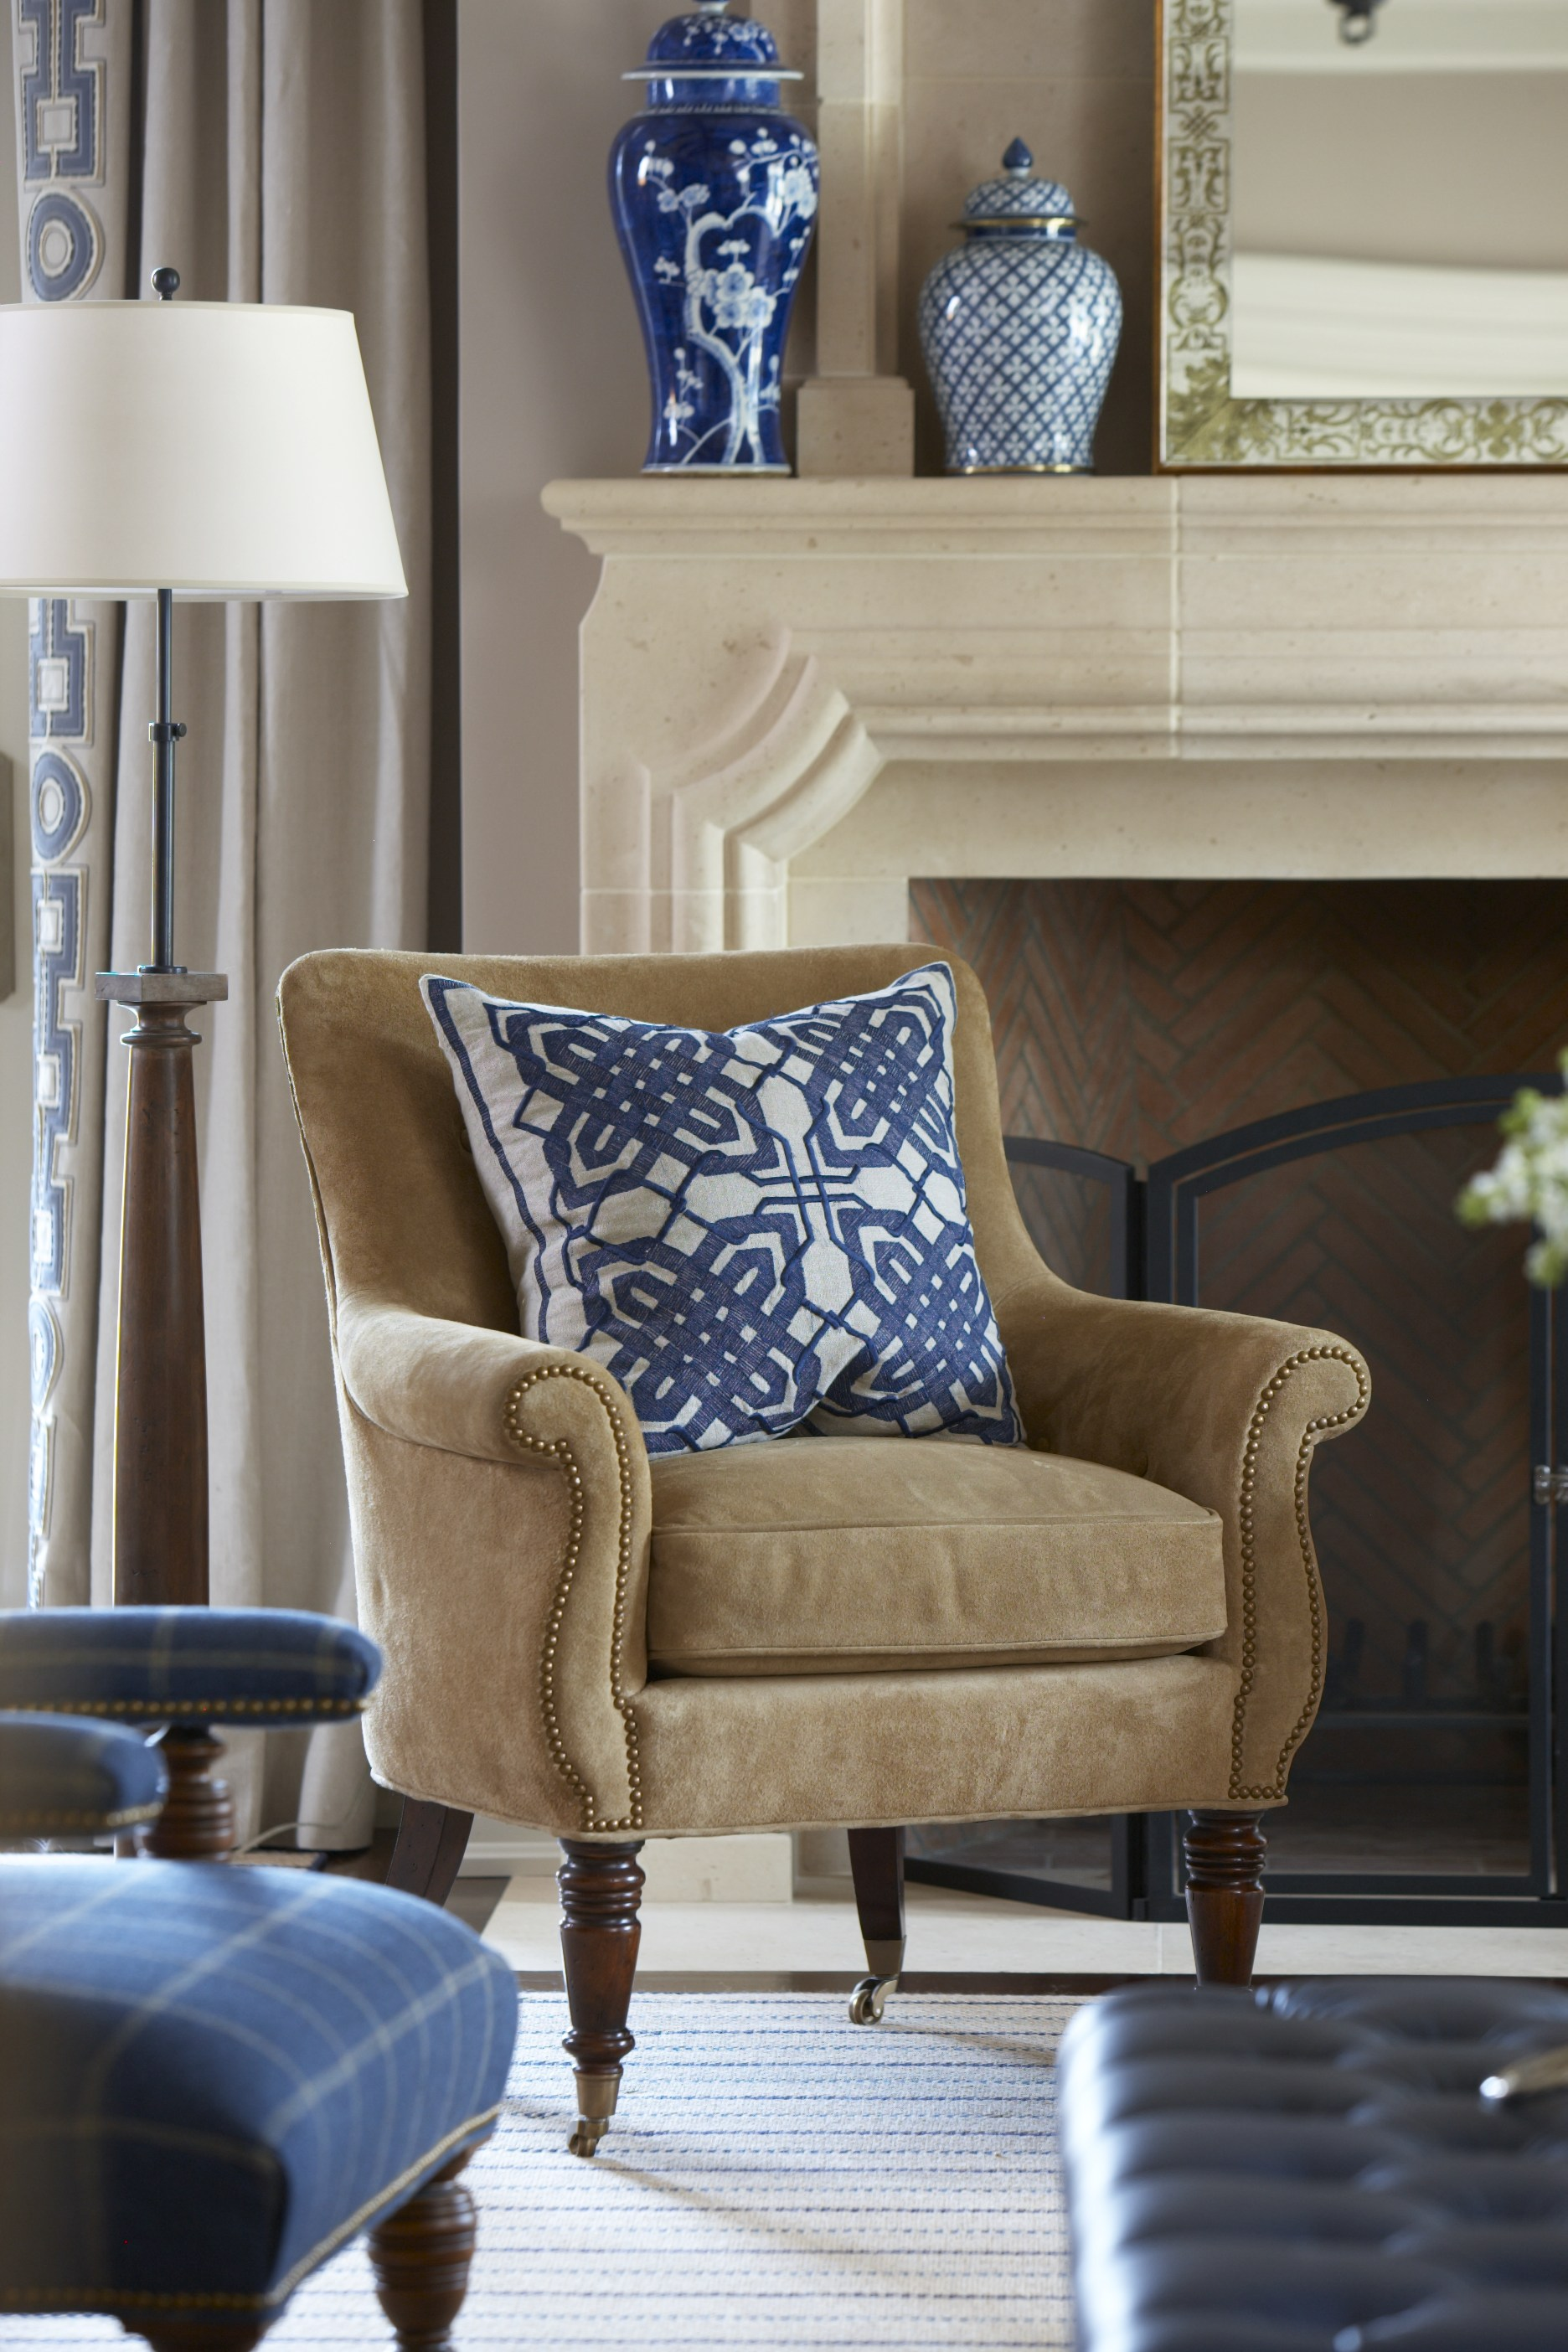 Blue and white abounds in a Greenwich family room designed by Cindy Rinfret.